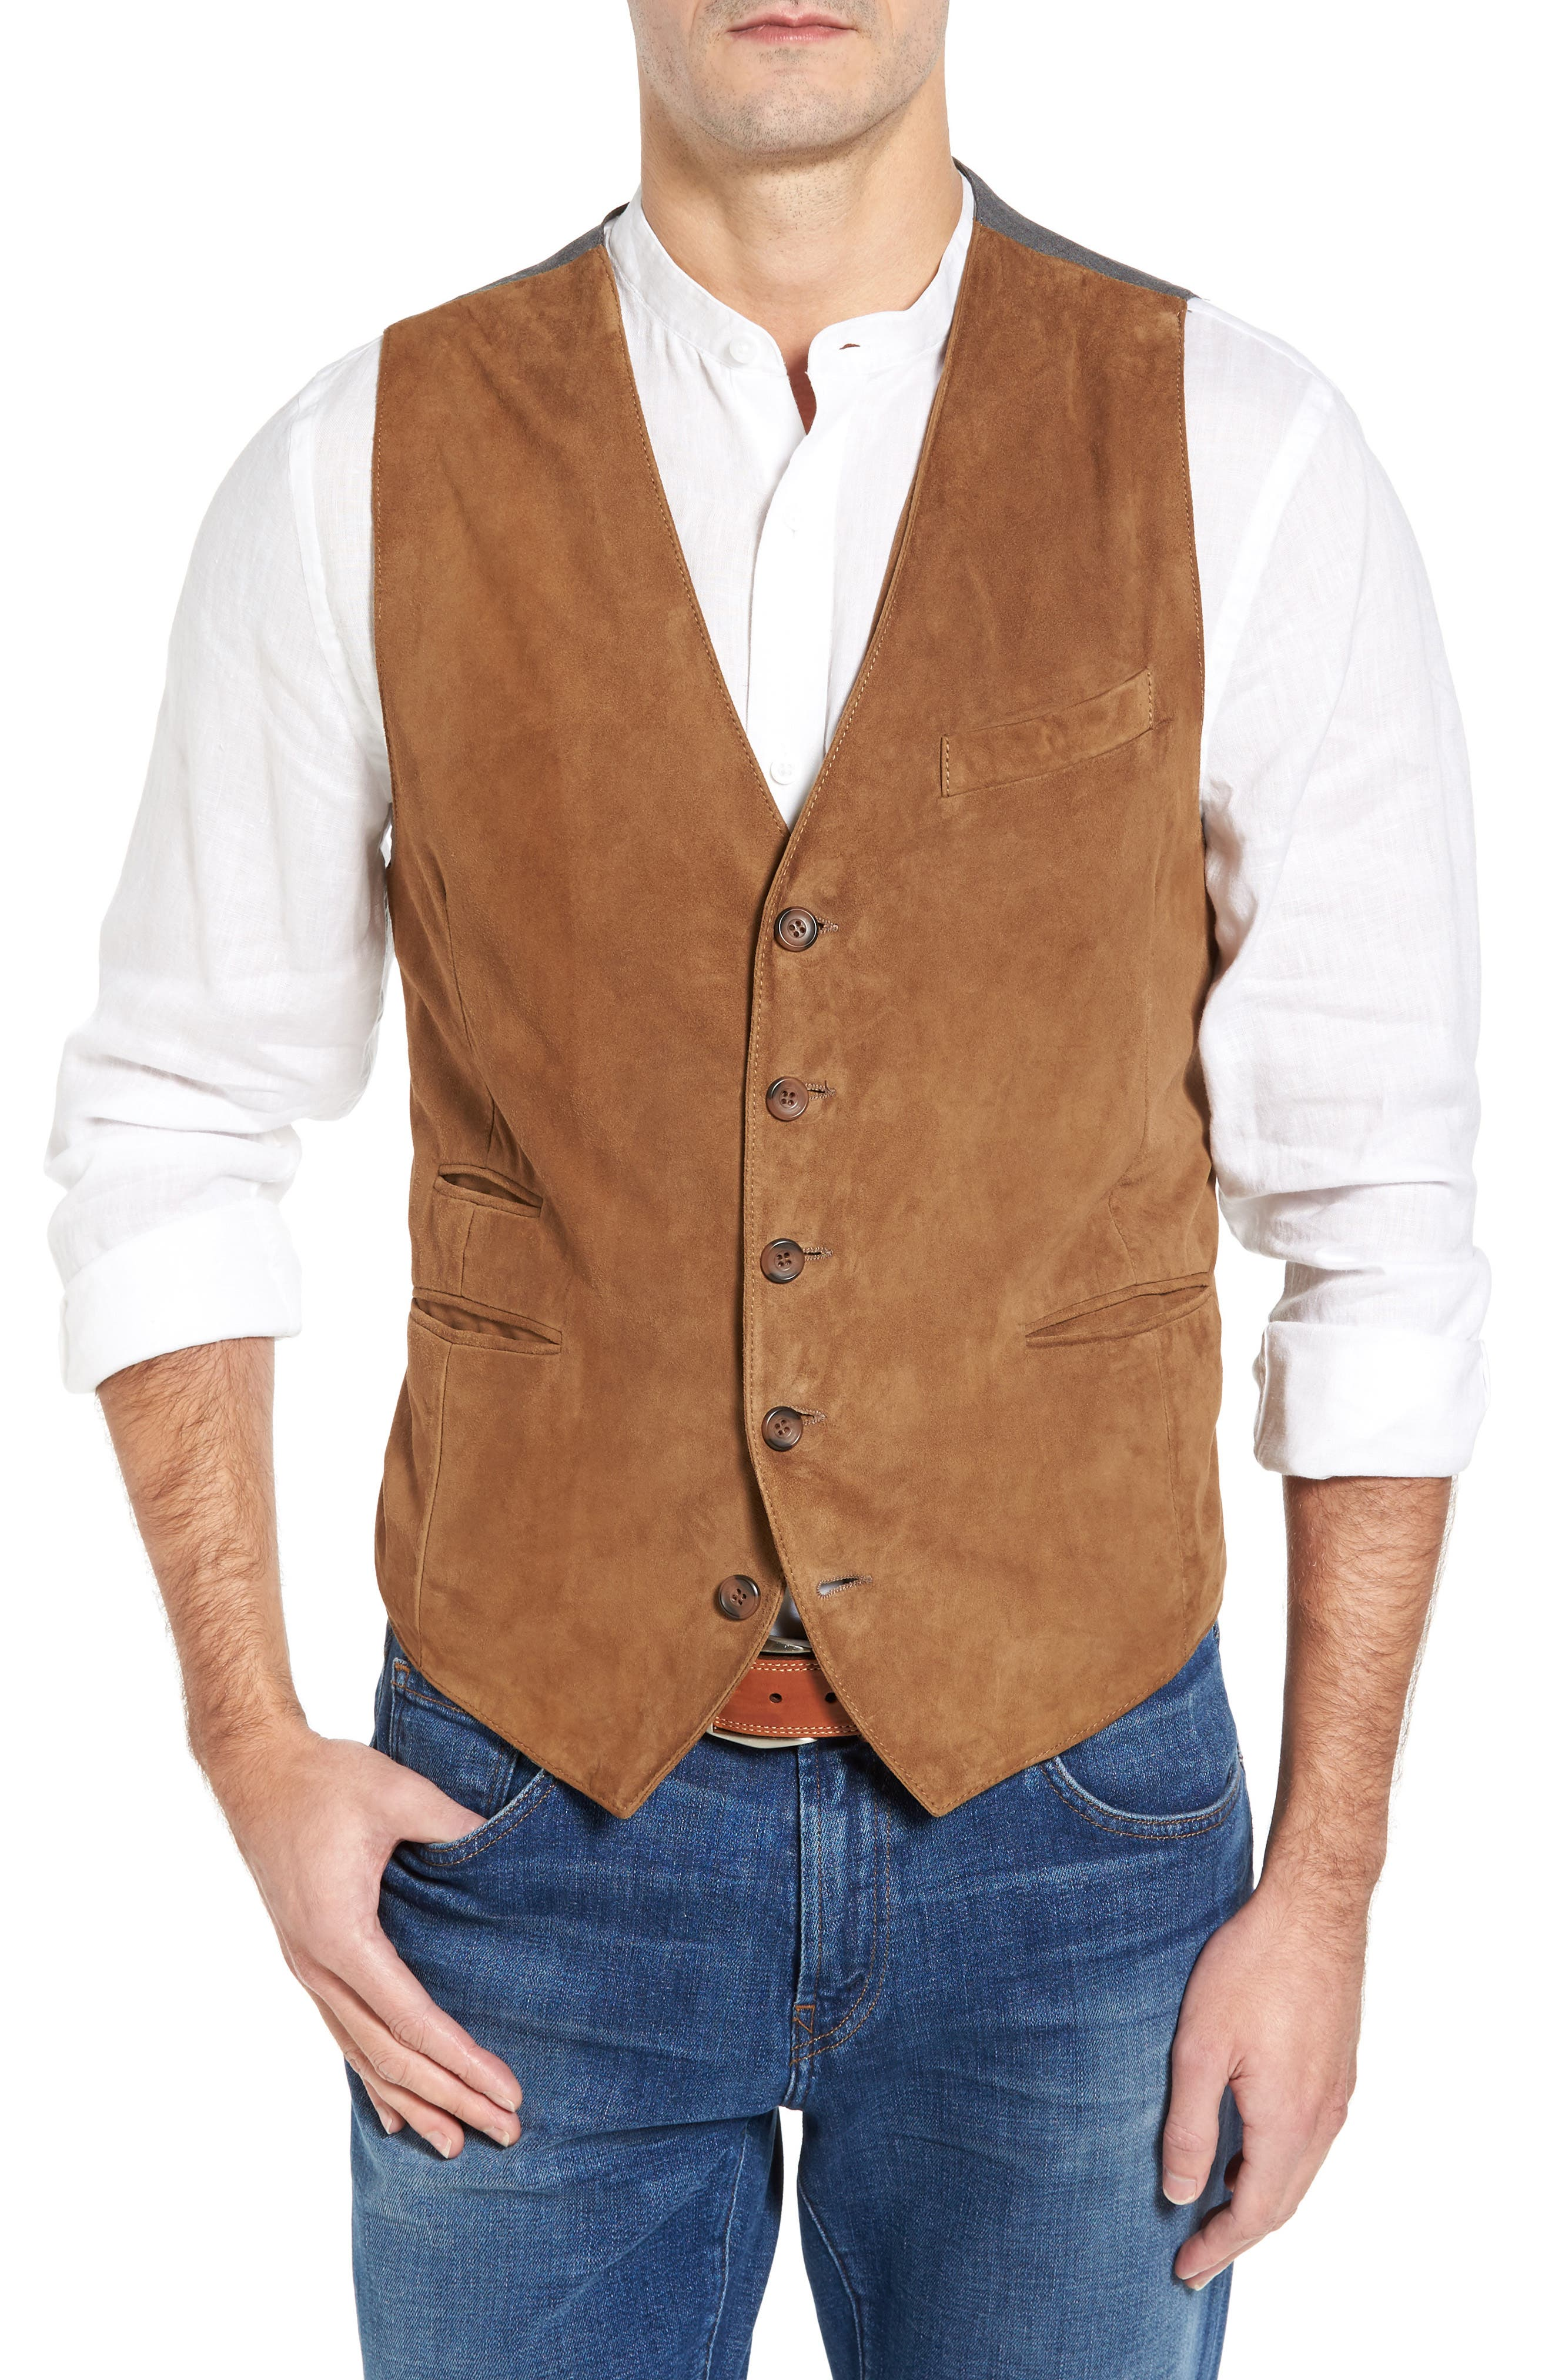 Lamb Front Vest,                         Main,                         color, Tobacco